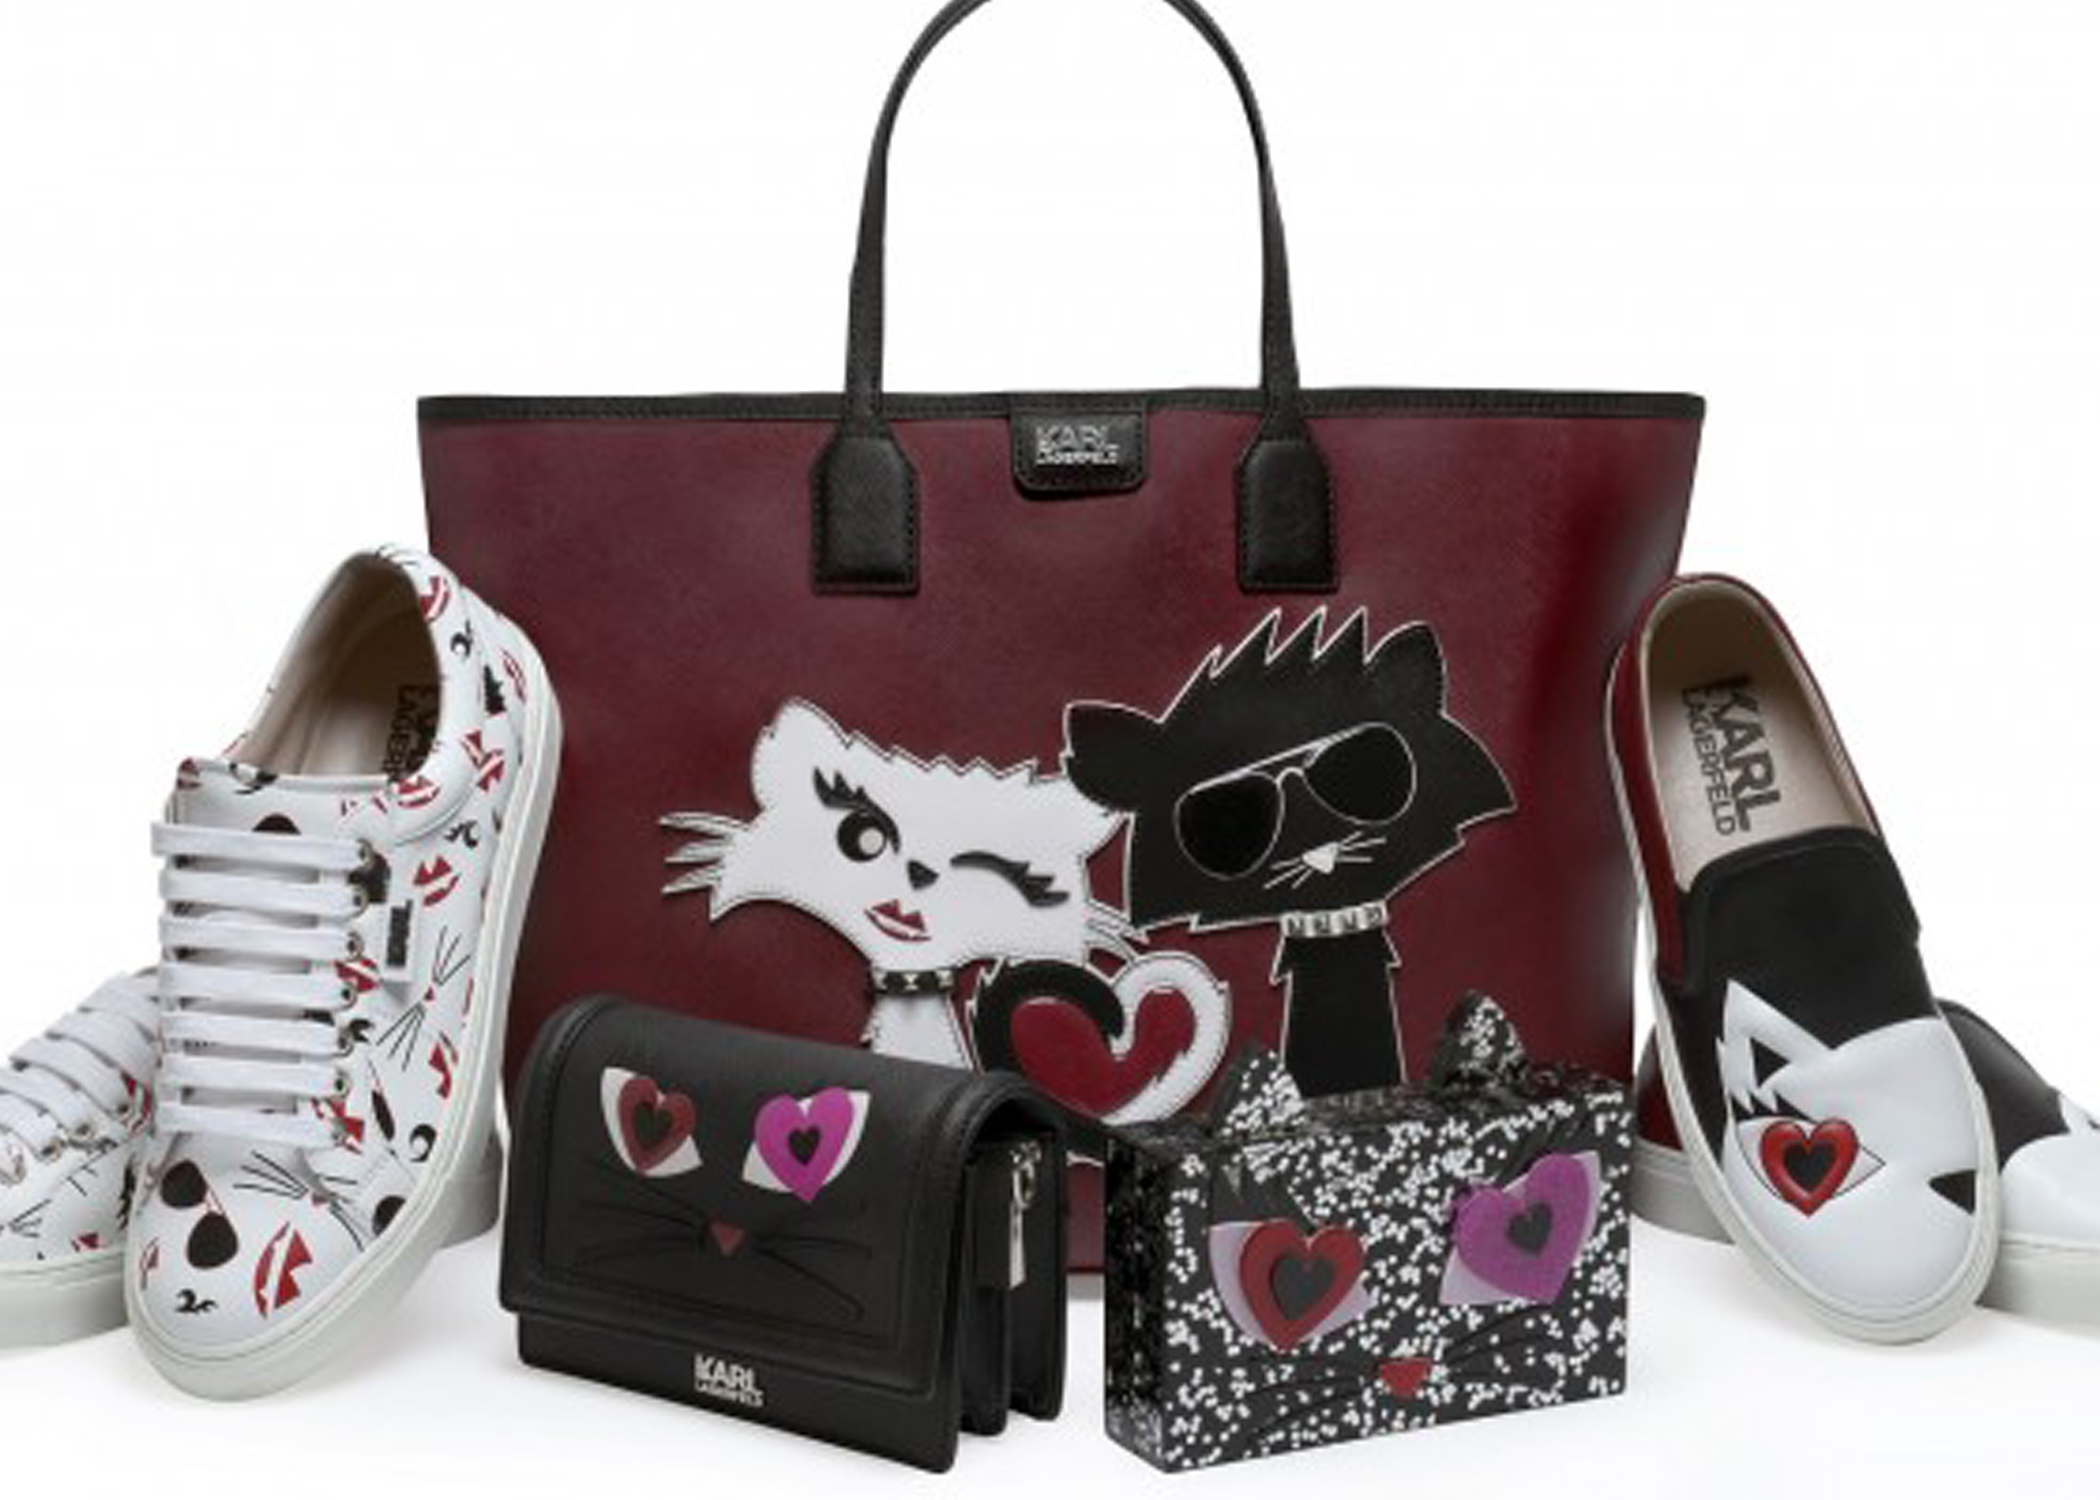 Karl Lagerfeld Choupette Collection